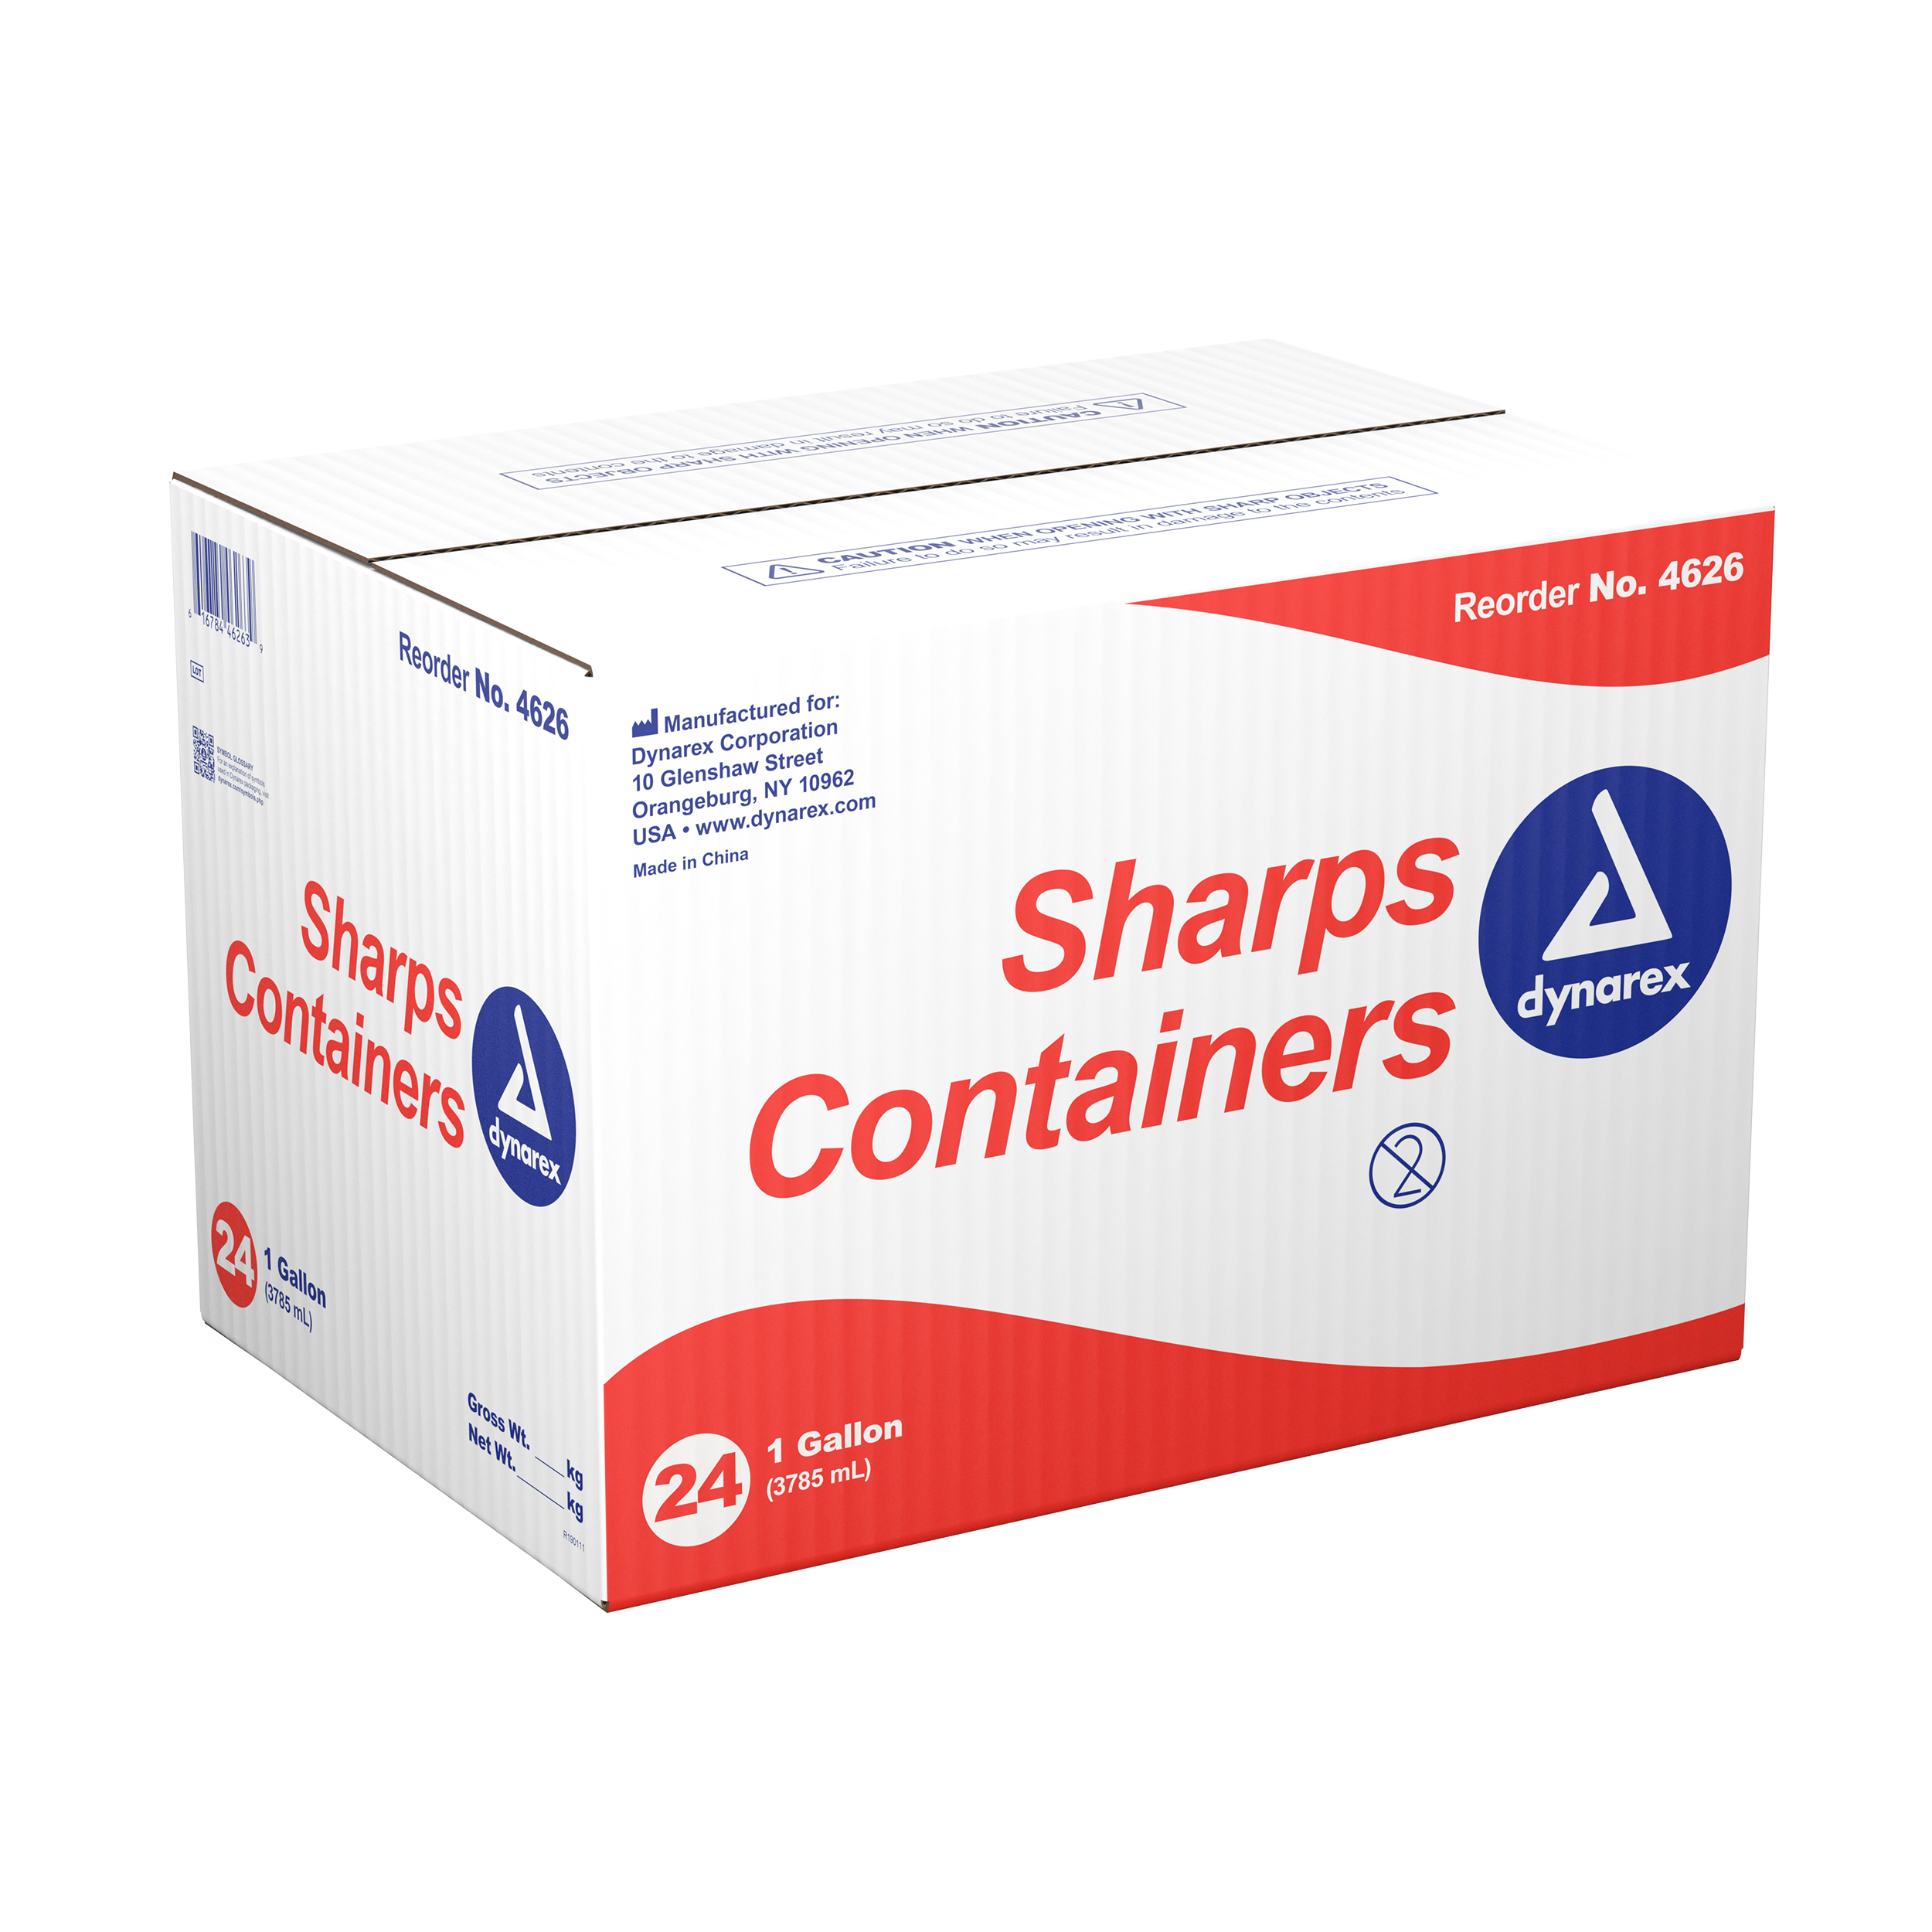 Sharps Containers - 1gal. - 24/Cs